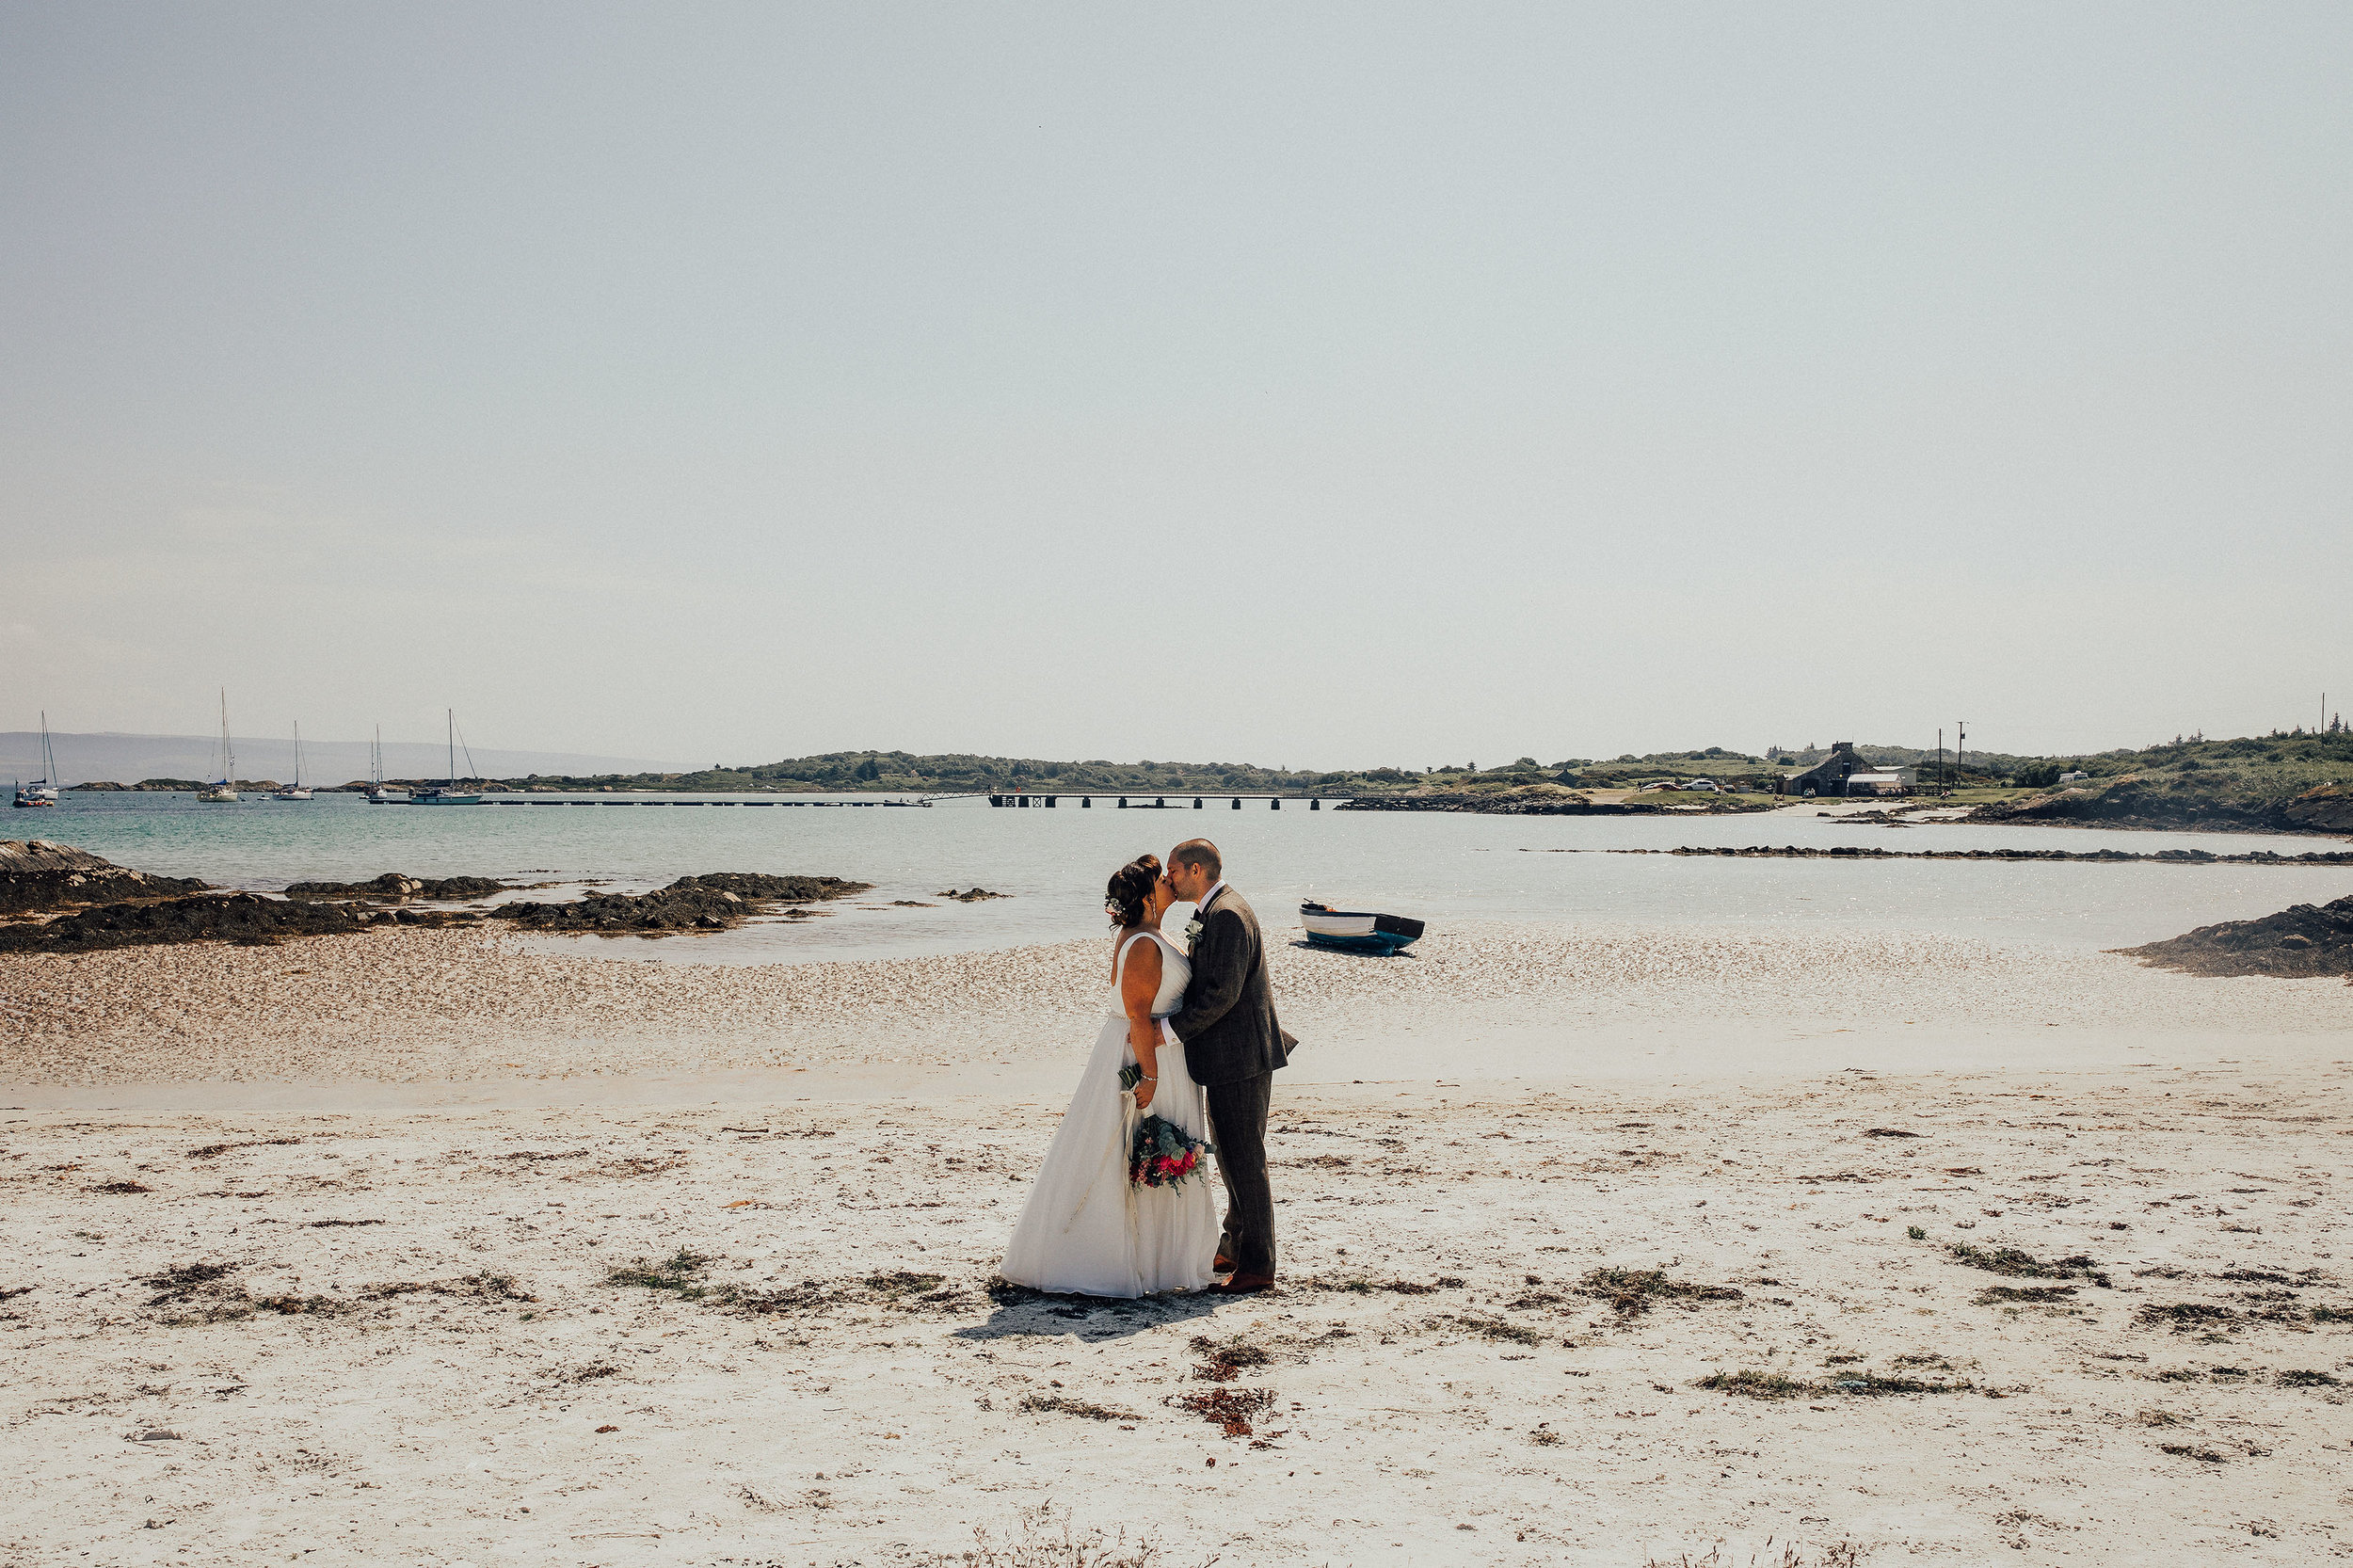 SCOTTISH_ELOPEMENT_PHOTOGRAPHER_PJ_PHILLIPS_PHOTOGRAPHY_113.jpg